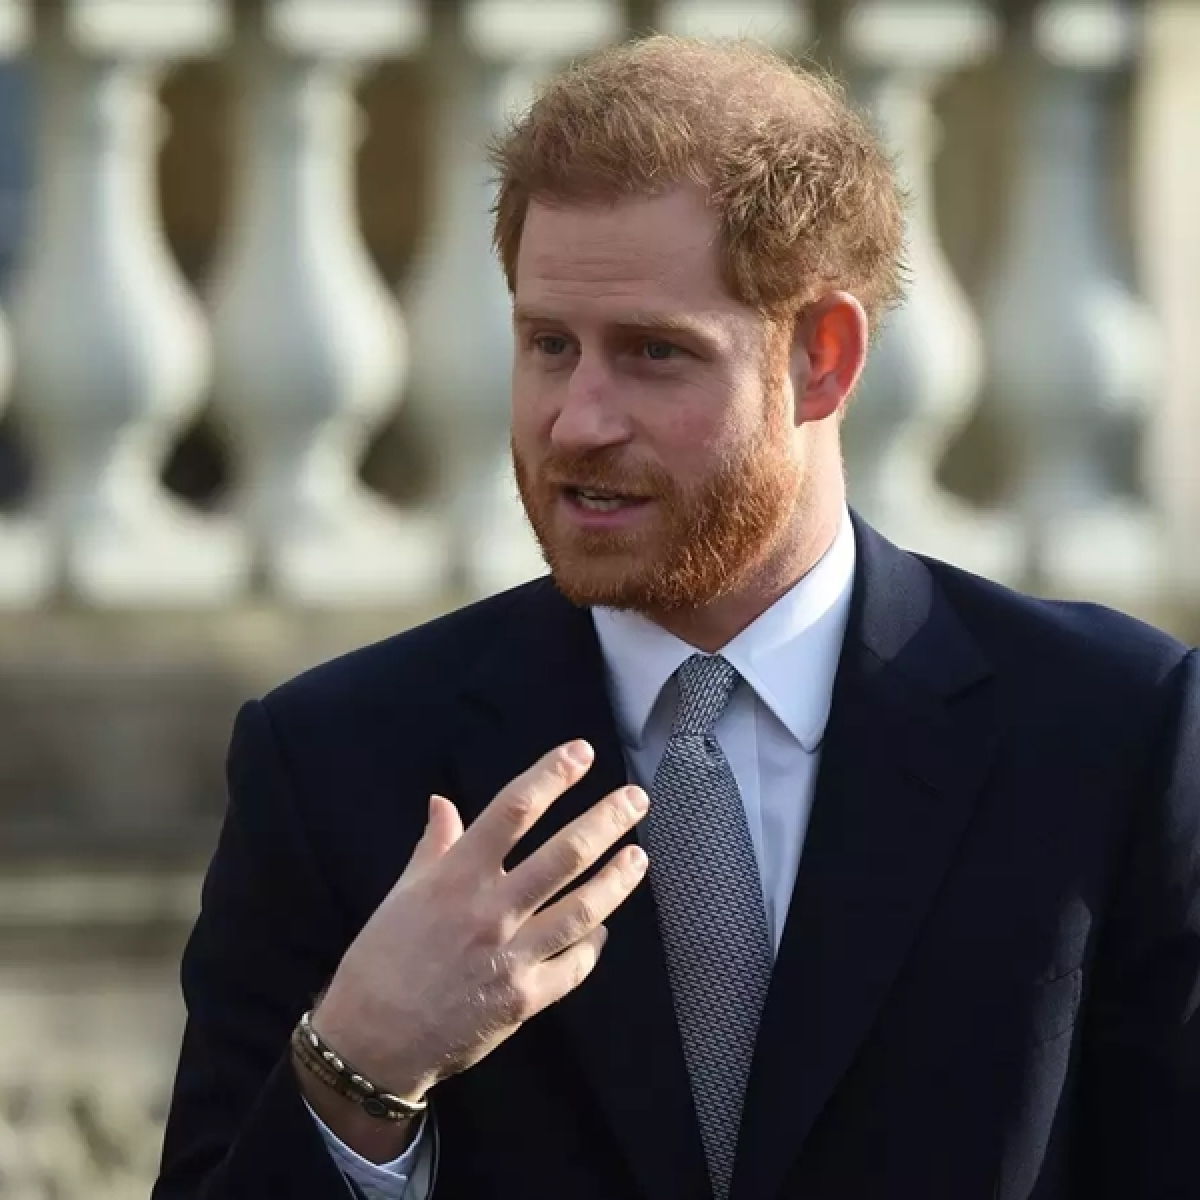 'We had no other option but to step back': Prince Harry